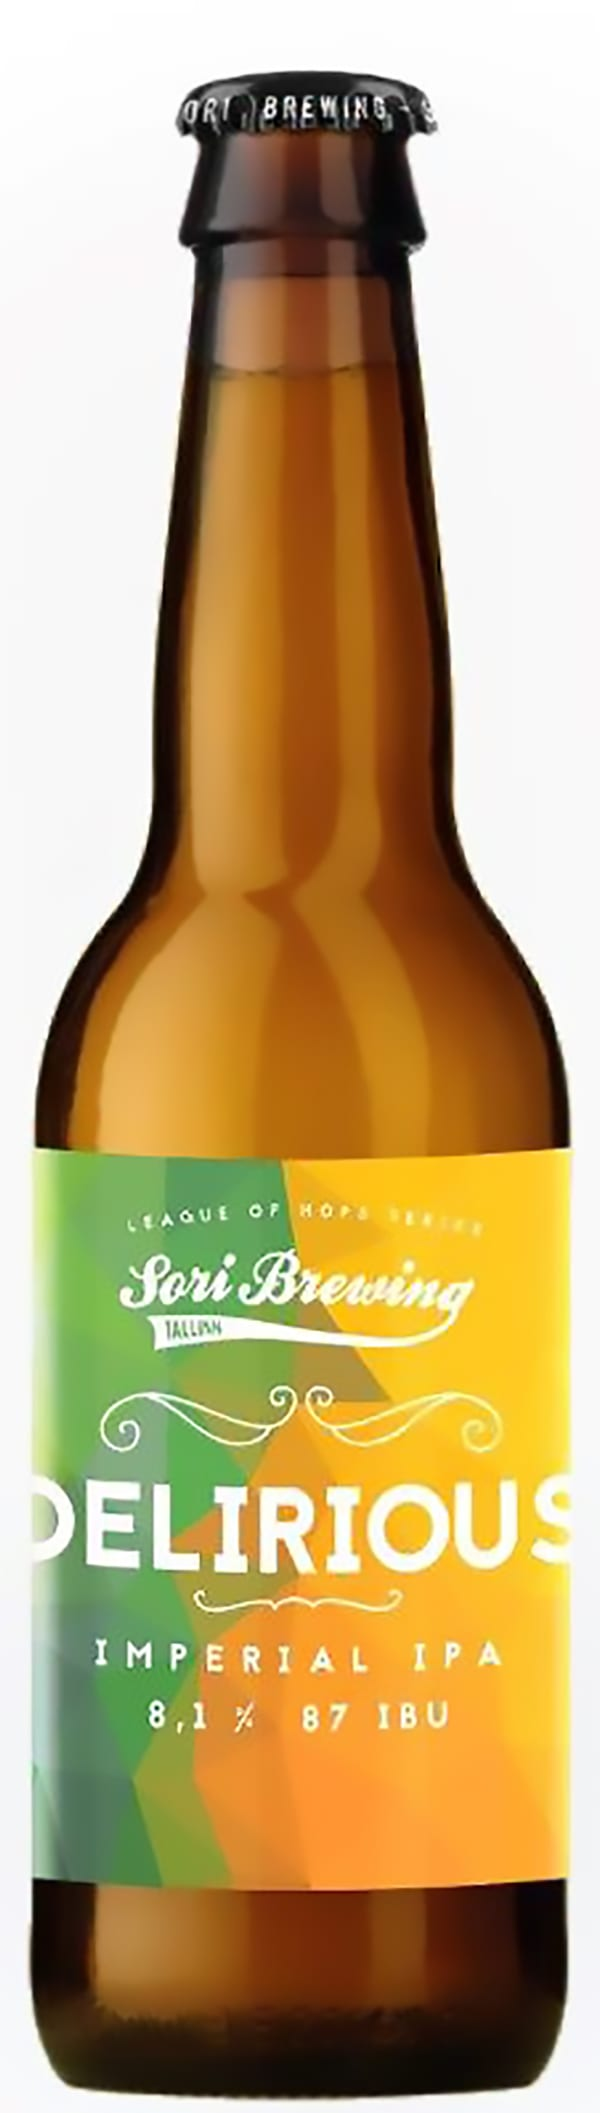 Sori Brewing Delirious Imperial IPA